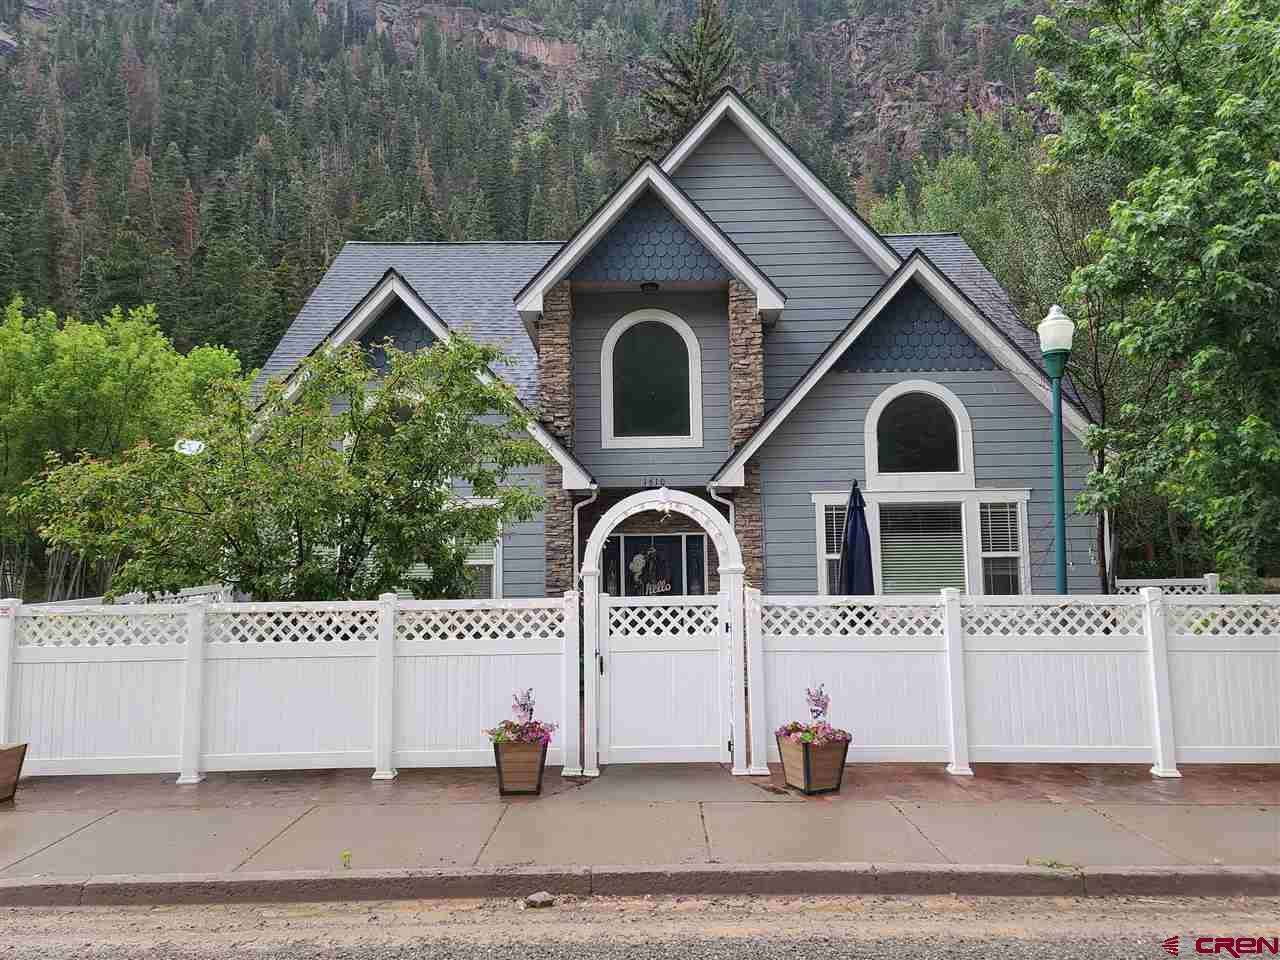 Well built 2,100 square foot 3 bedroom 3 bath home with an attached 2 bedroom 2 bath apartment in Ouray CO. The house has nice sized rooms with a vaulted ceiling in the living room.  The apartment is 1,200 square feet with a great balcony with views and has ample storage. 3 car garage and lots of parking. Both homes have vaulted ceilings, gas fireplaces, nice floorplans with a total of 3,340 square feet. Walk to town on the River trail. Can be rented long or short term and rentals are in demand. Buy the lot next door for a huge yard or parking for your toys.